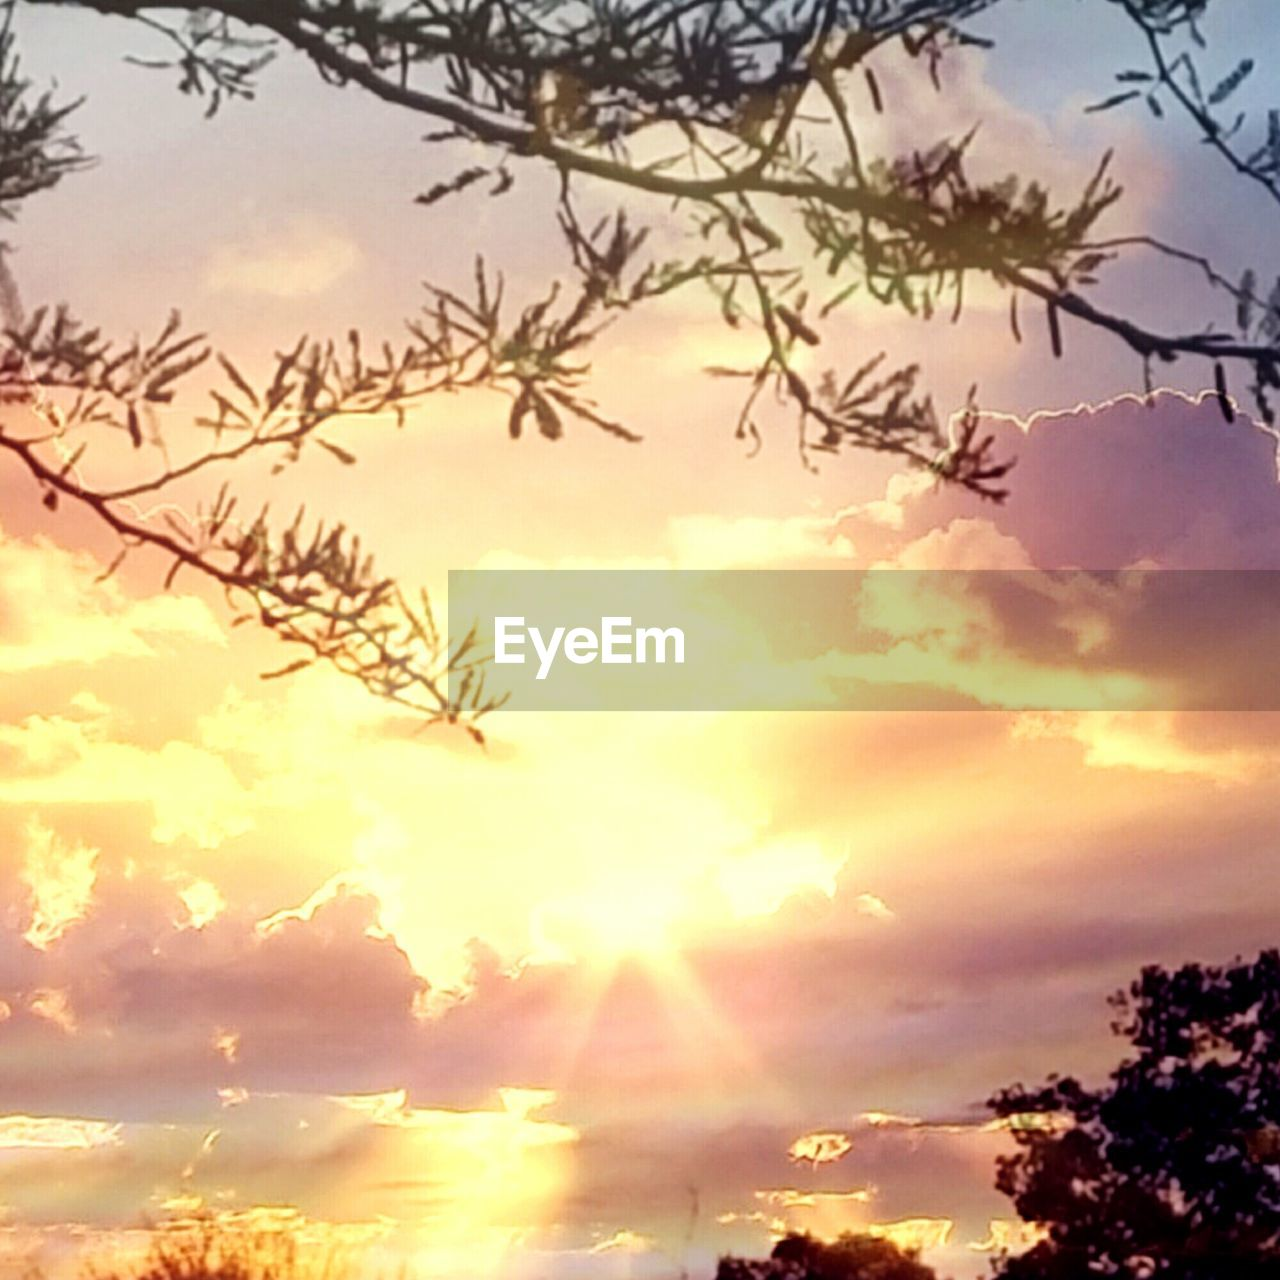 sky, sunset, nature, beauty in nature, low angle view, cloud - sky, outdoors, no people, scenics, tranquility, tree, tranquil scene, silhouette, growth, day